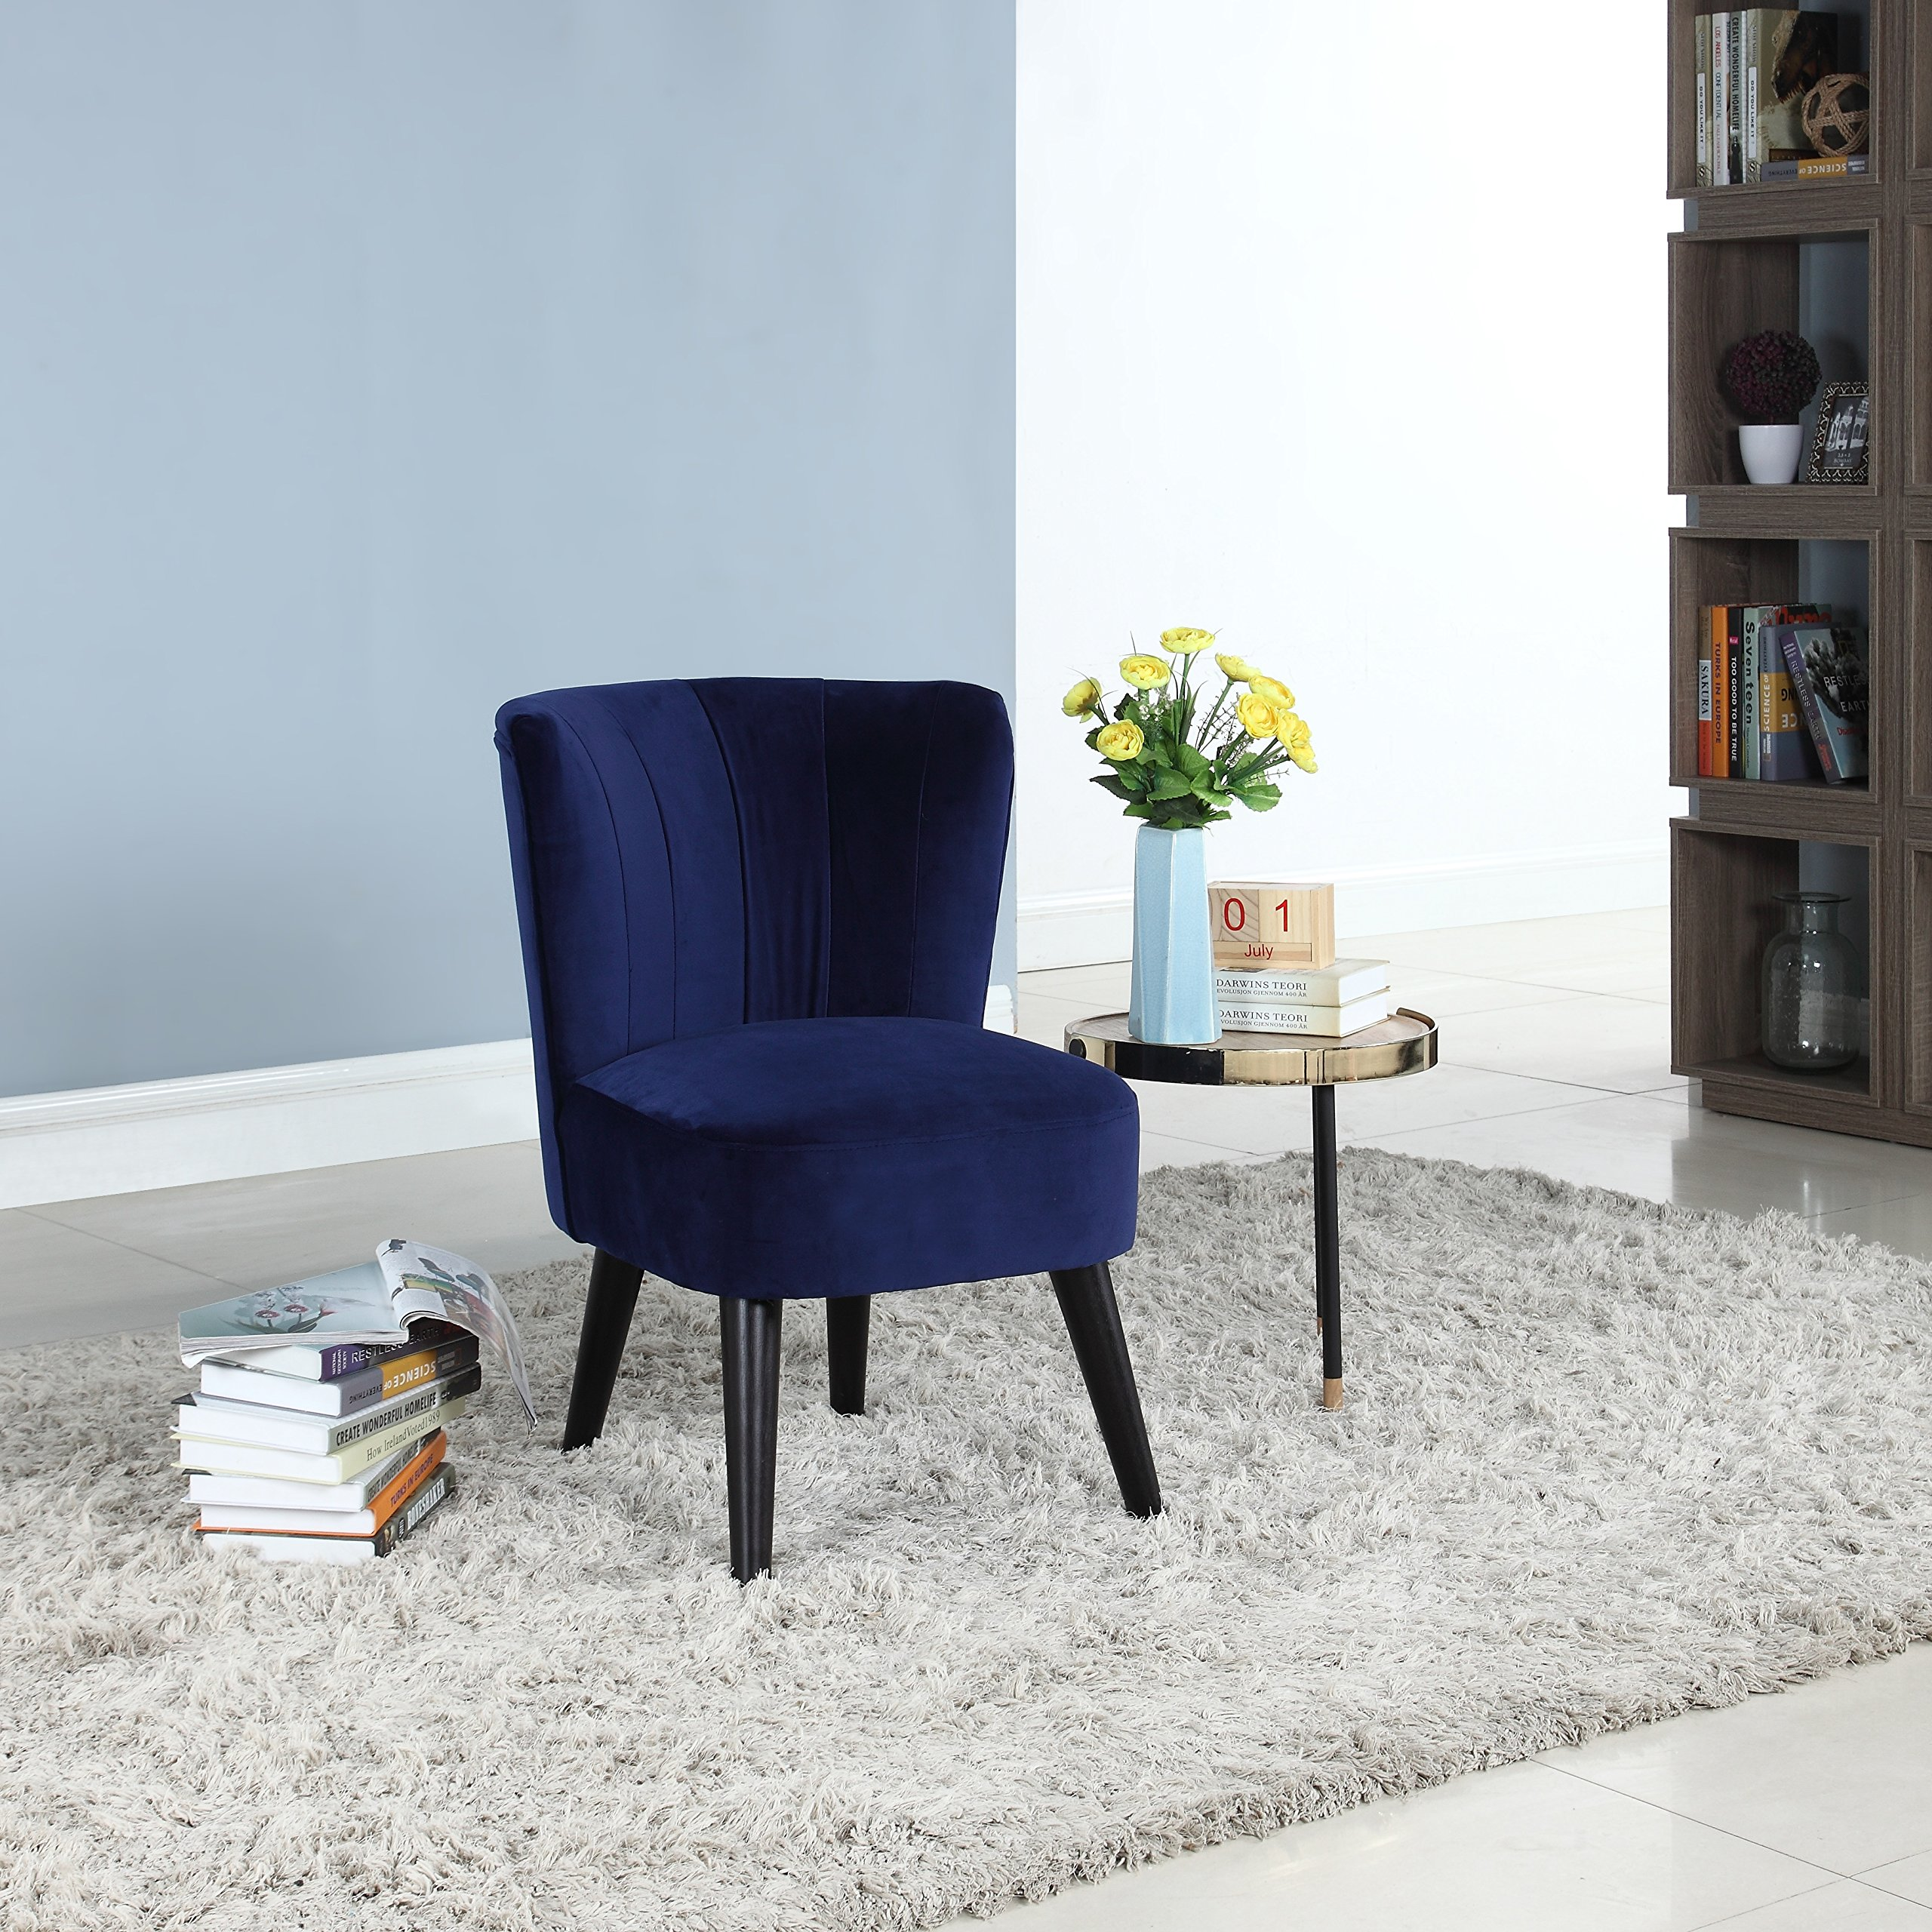 Traditional Living Room Chairs: DIVANO ROMA FURNITURE Classic And Traditional Living Room